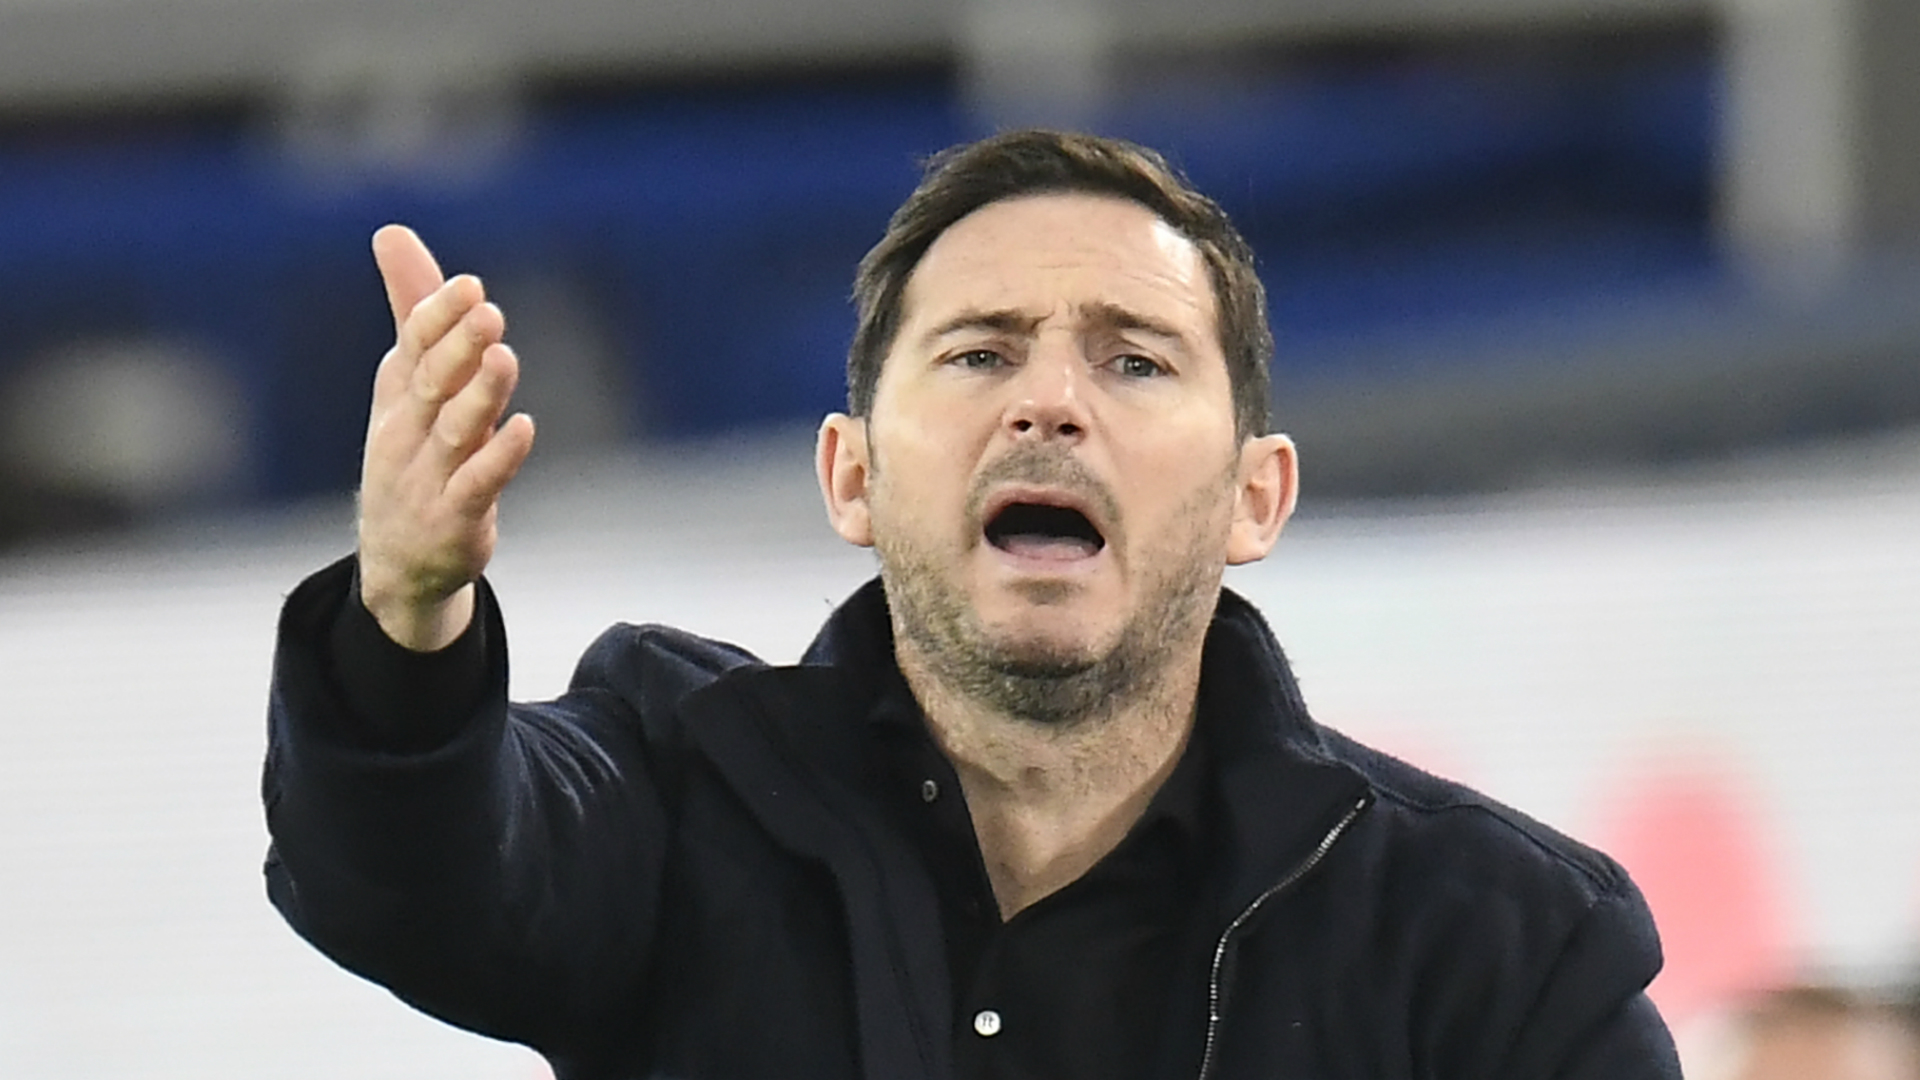 Lampard warning as Premier League demands curb on goal celebrations